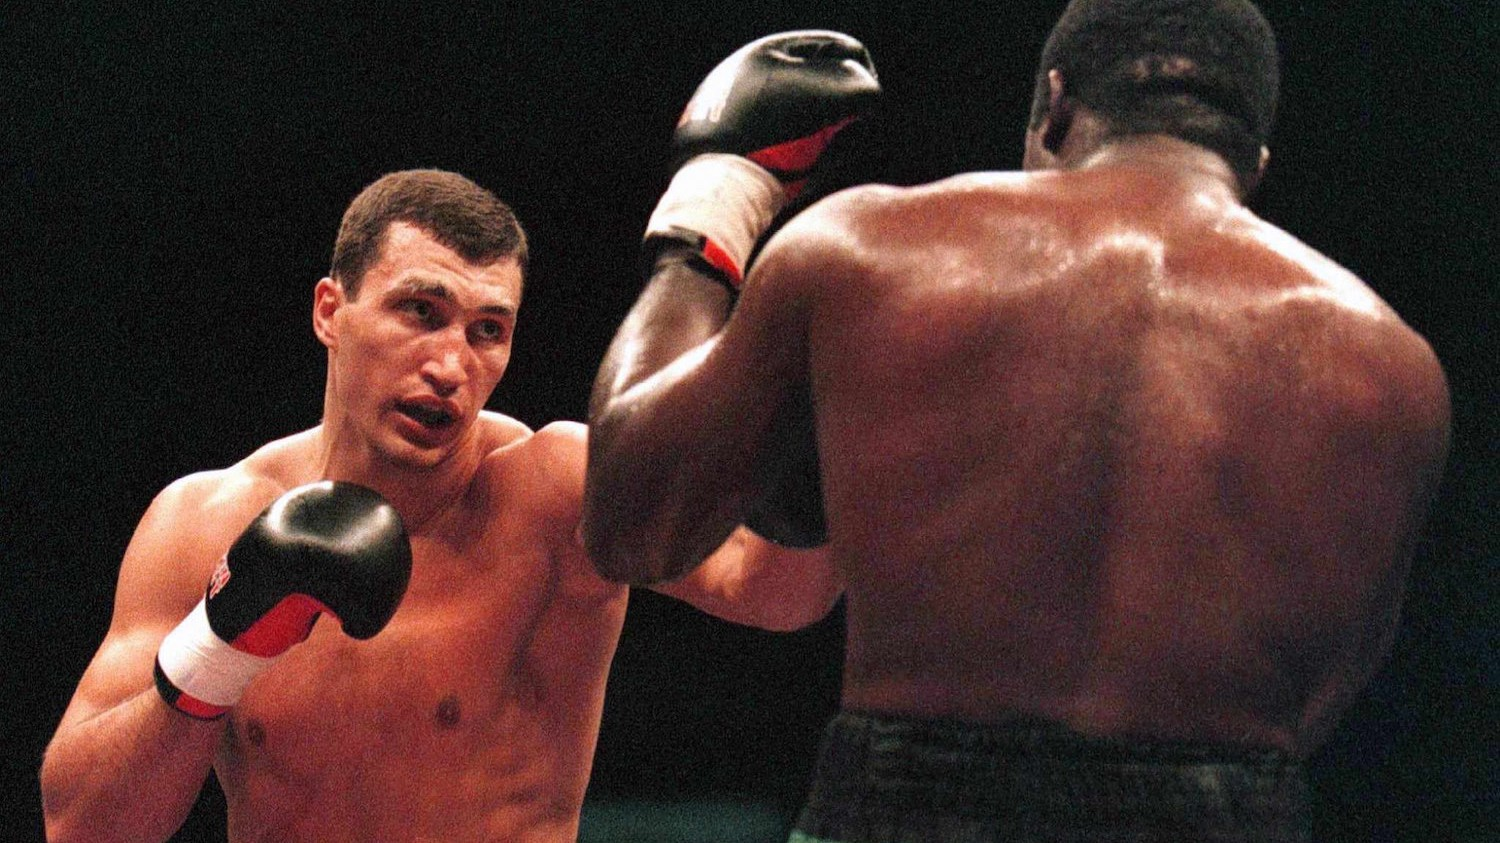 What Does Wladimir Klitschko's First Professional Loss Say About His Fight With Anthony Joshua?